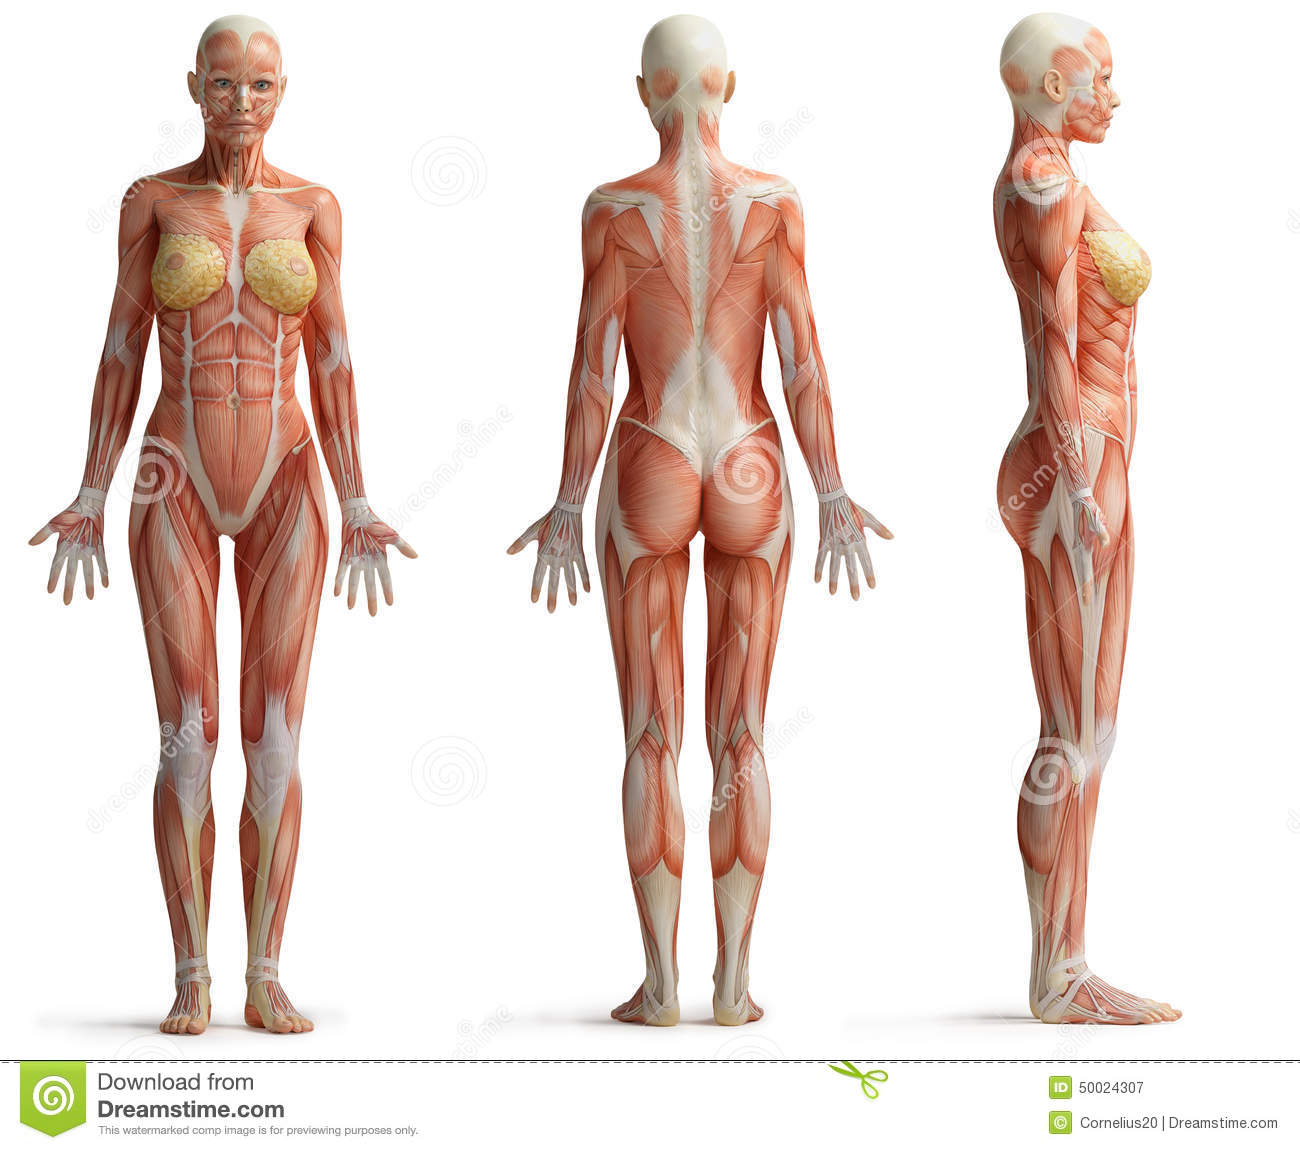 female anatomy stock illustration - image: 50024307, Human Body